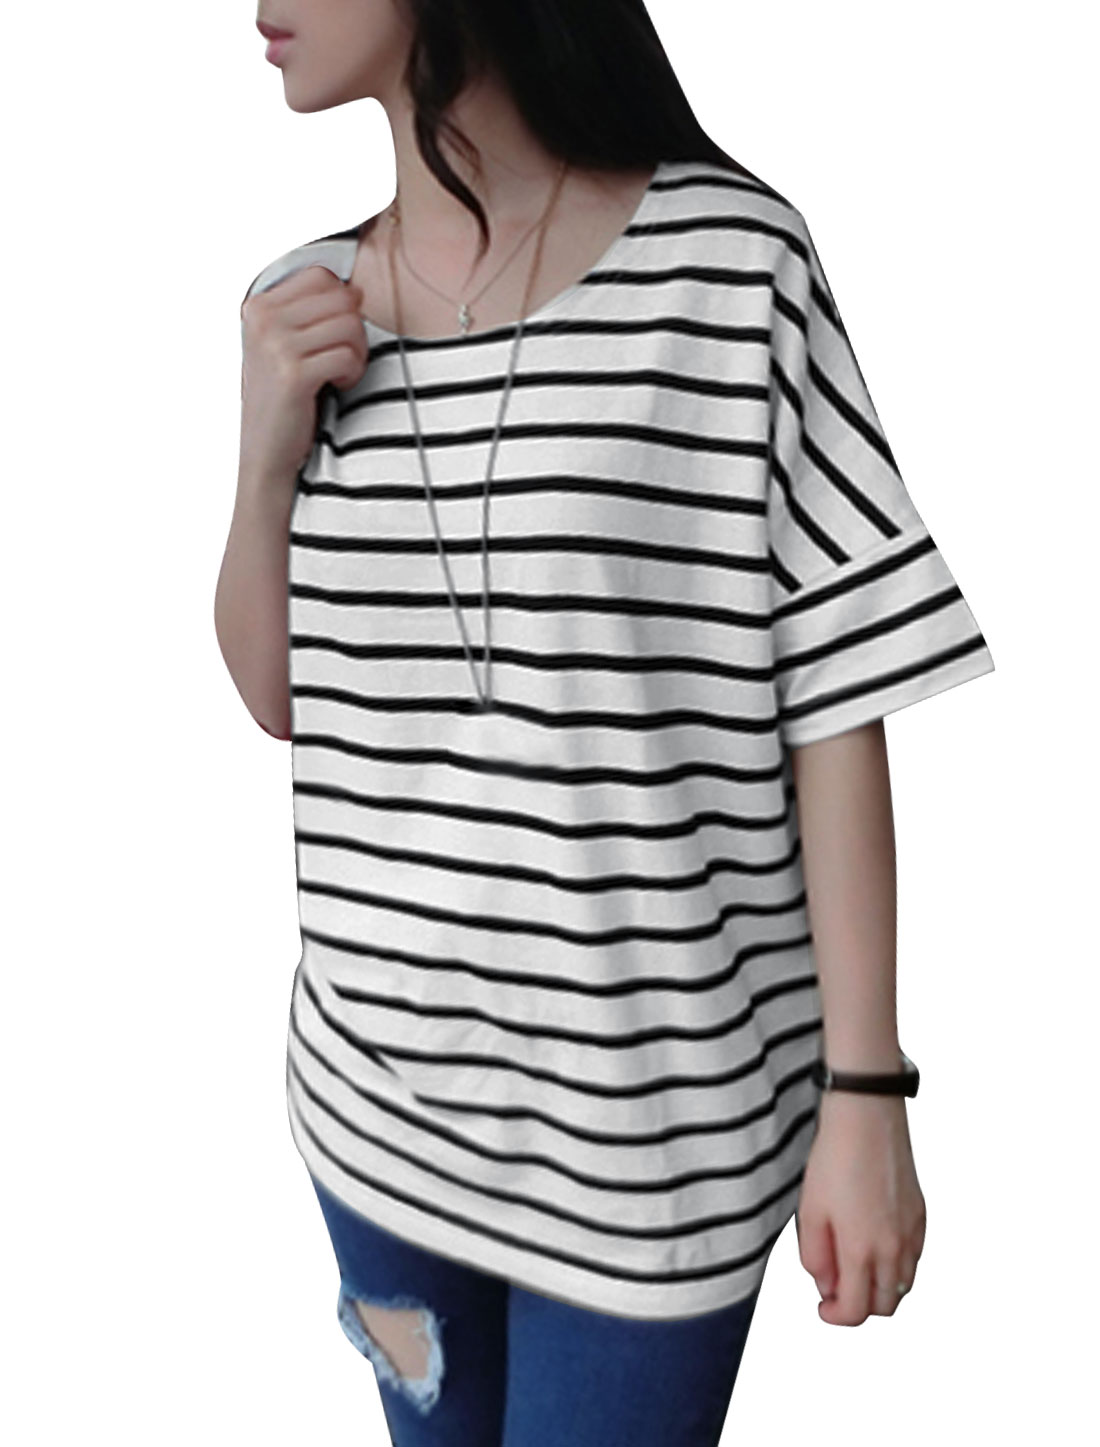 Lady Horizontal Stripes Low High Hem Batwing Elbow Sleeve Tunic T-Shirt White XS